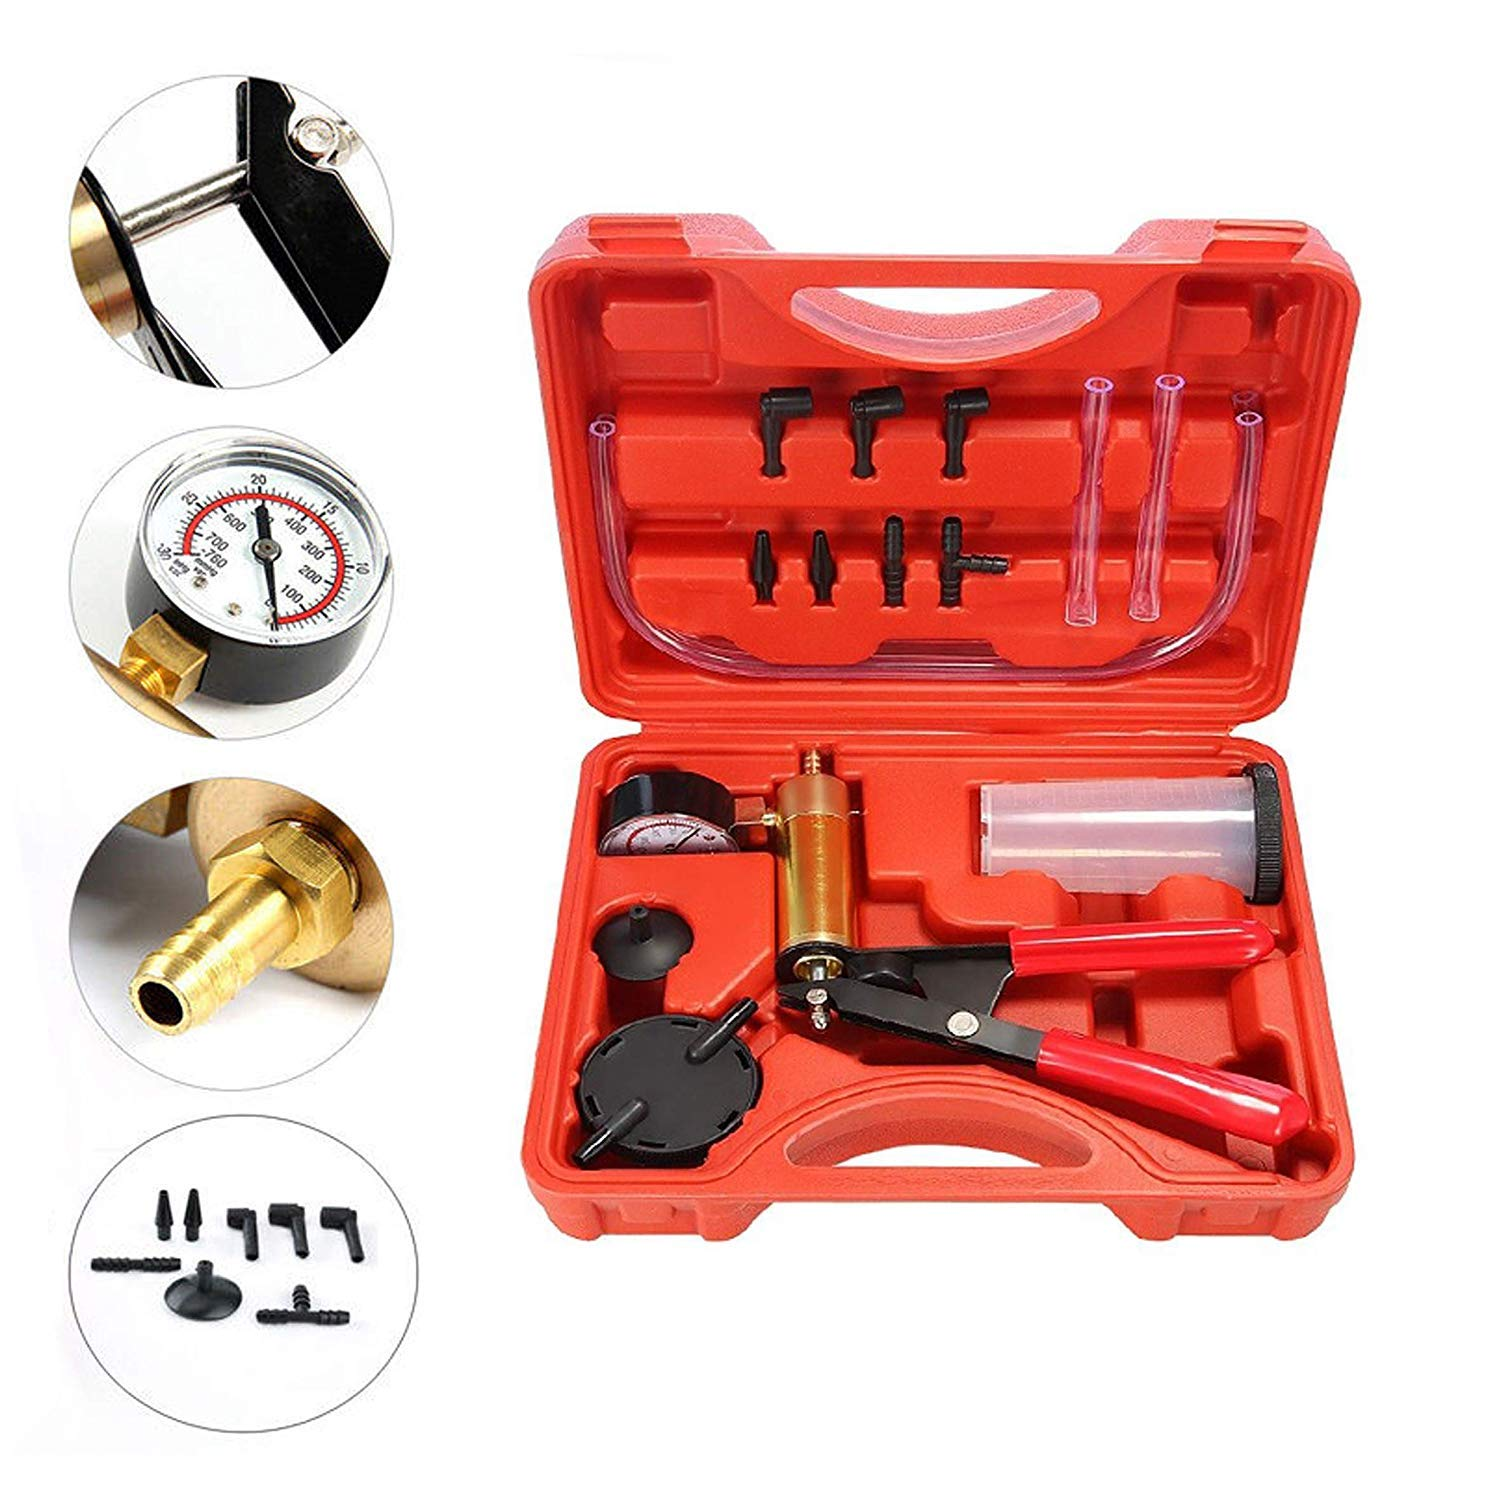 Podoy 2 in 1 Brake Bleeder Kit Handheld Vacuum Pump Test Set Tuner kit for Automotive Tuner Tools Adapters Case